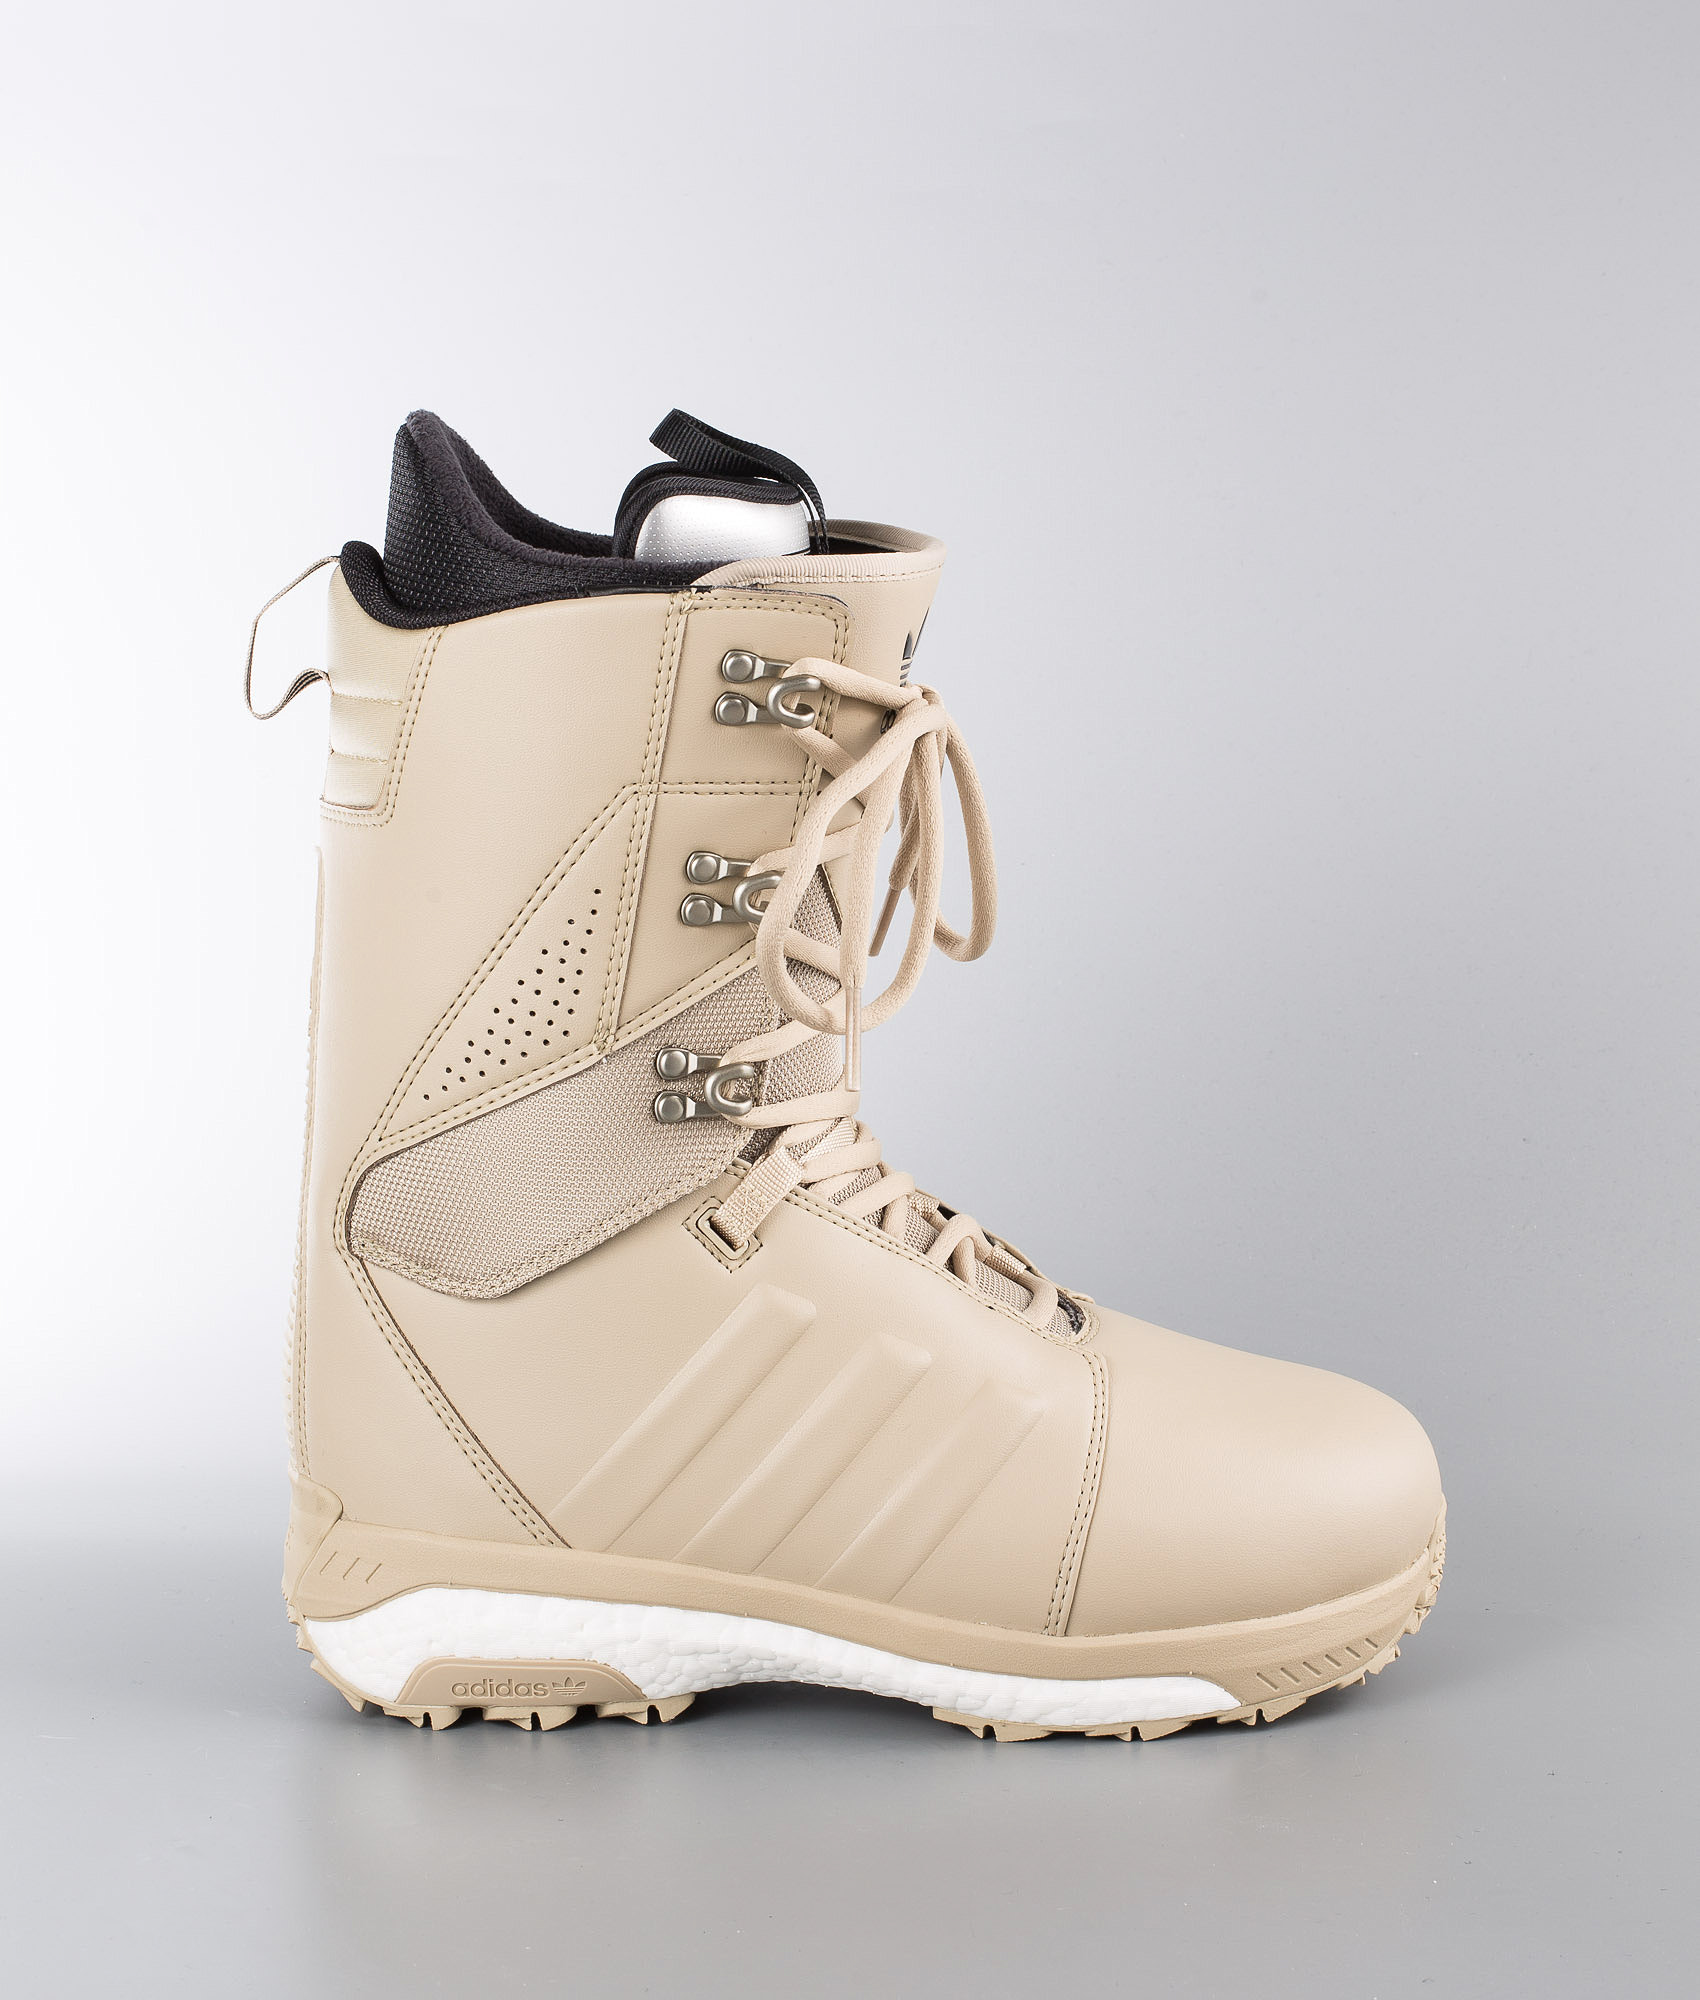 the latest 55f8a aa202 Adidas Snowboarding Tactical Adv Snowboard Boots